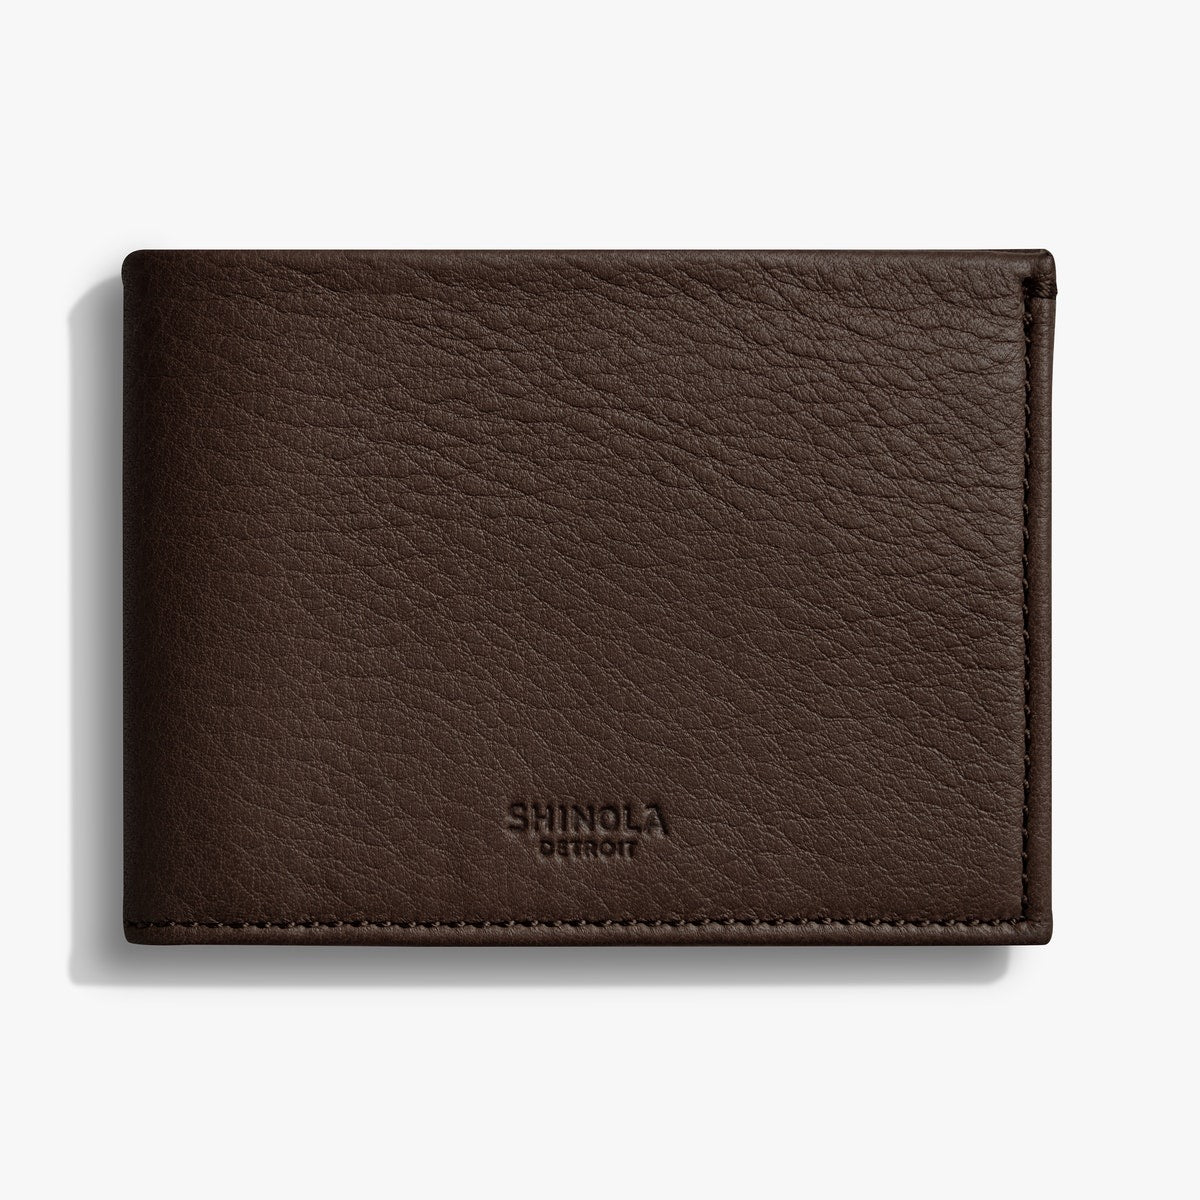 Shinola Brown Leather Wallet